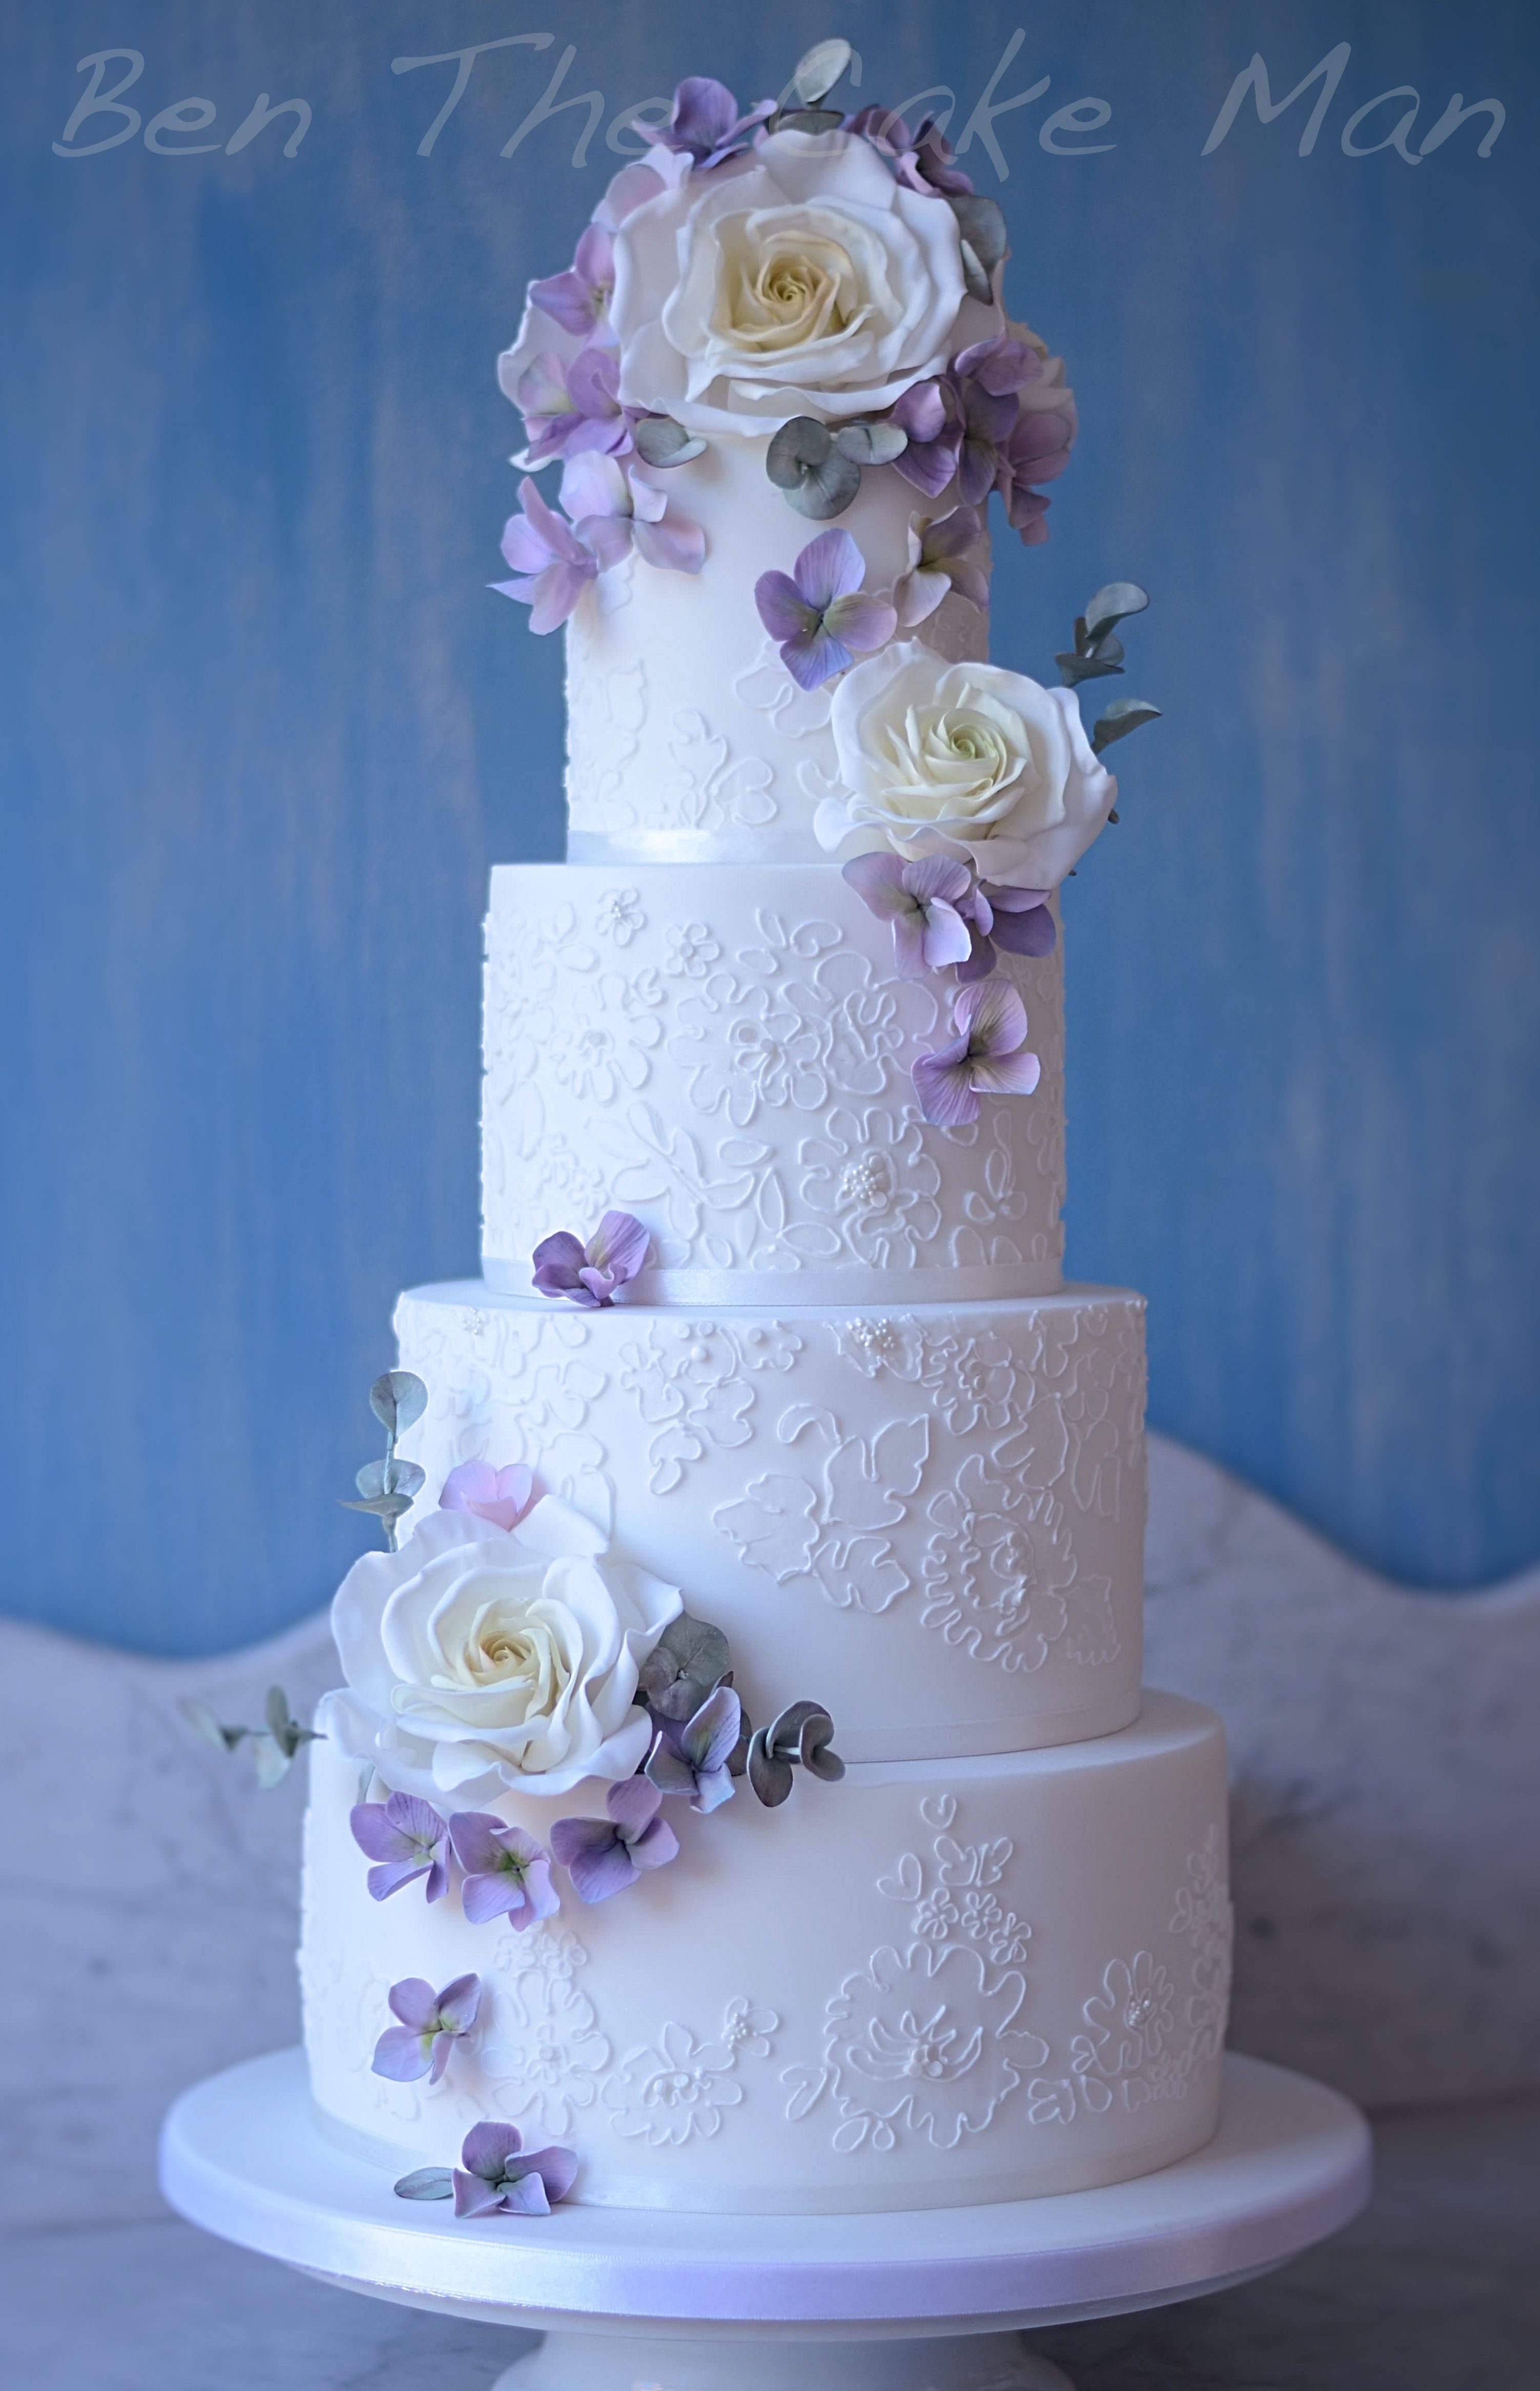 Follow us SIGNATUREBRIDE on Twitter and on Facebook at